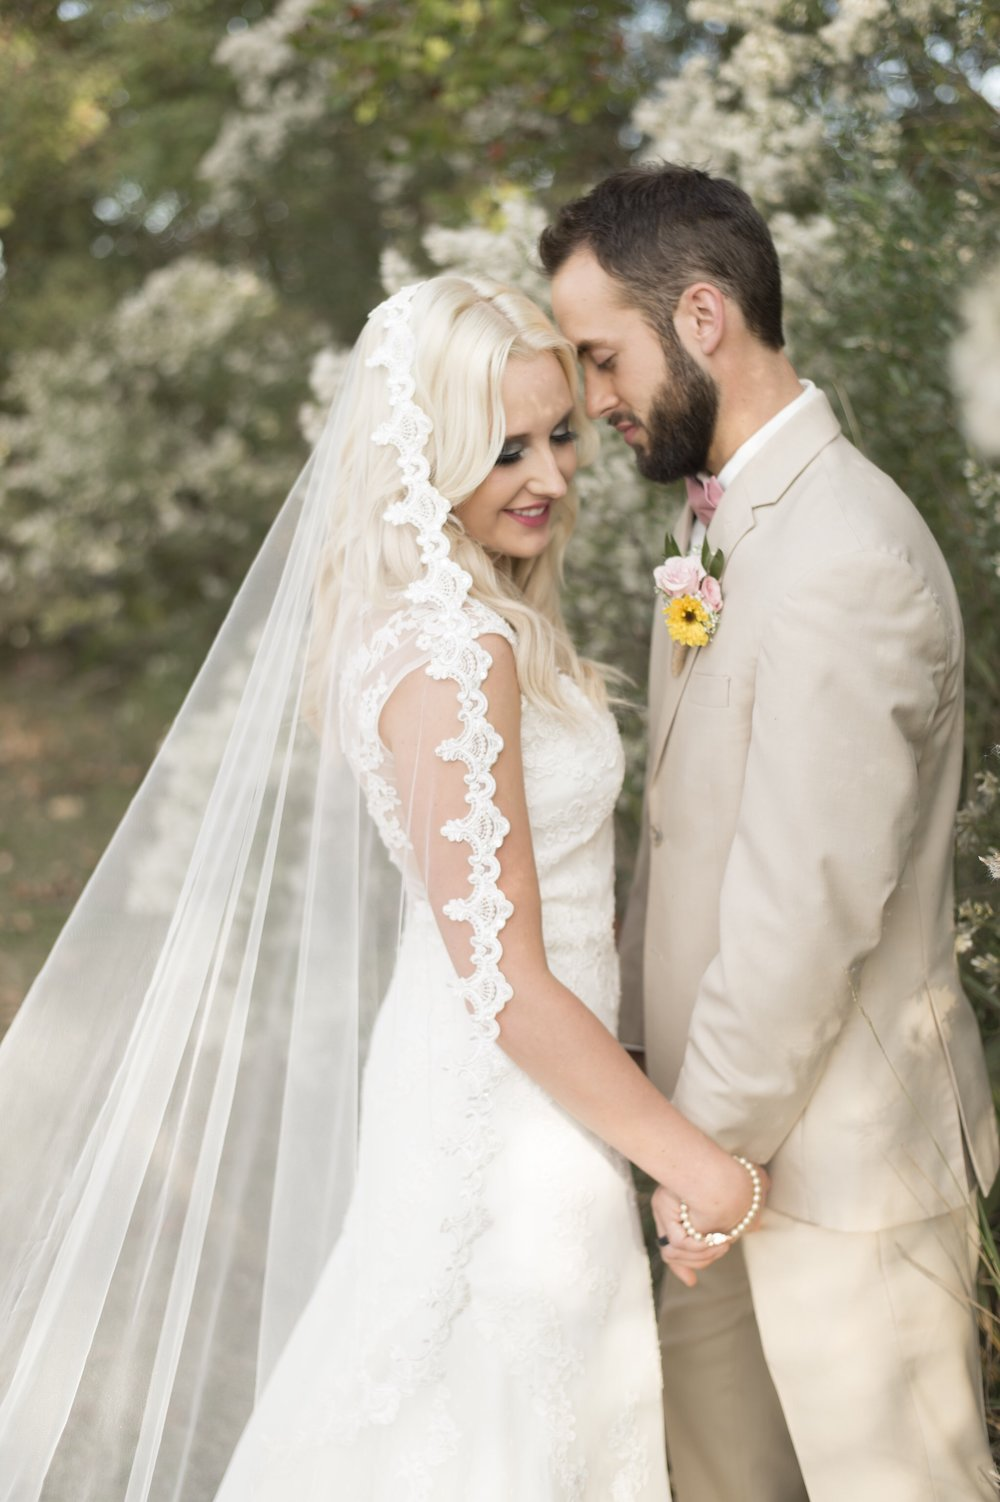 Mantilla Lace Veil, Beaded-$78